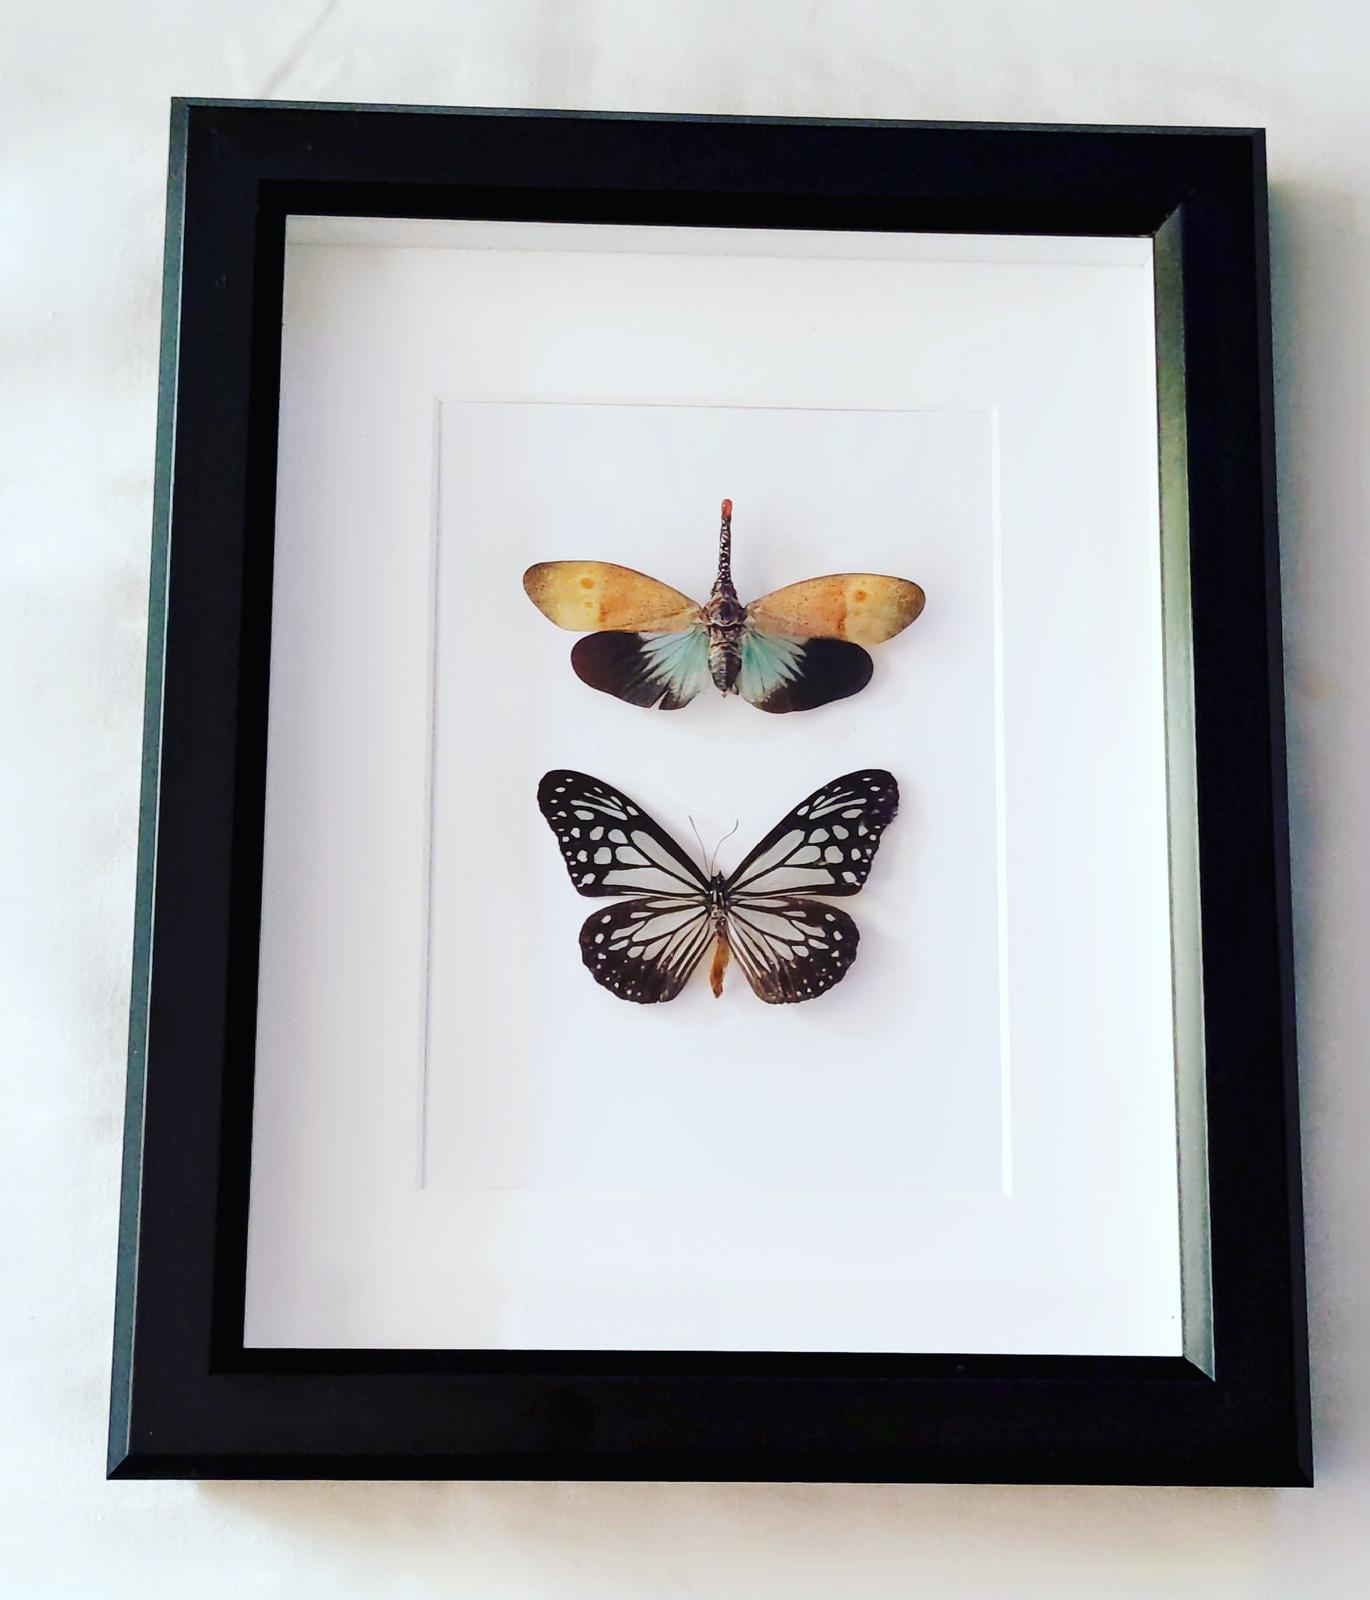 Lantern Bug and Butterfly Specimens